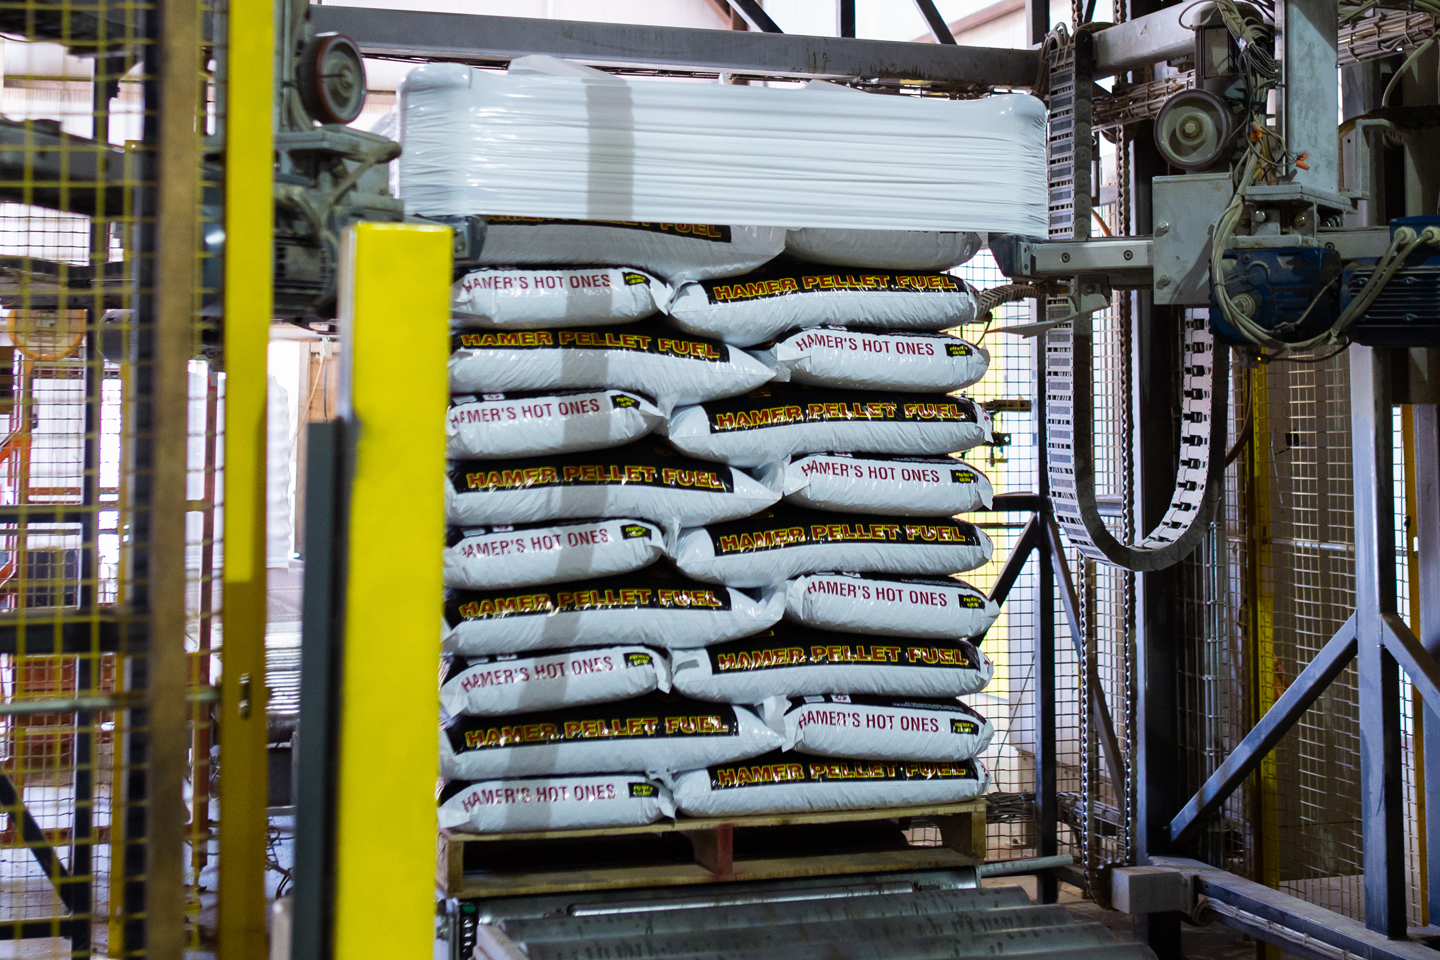 Bags of Hamer's Hot ones being stacked